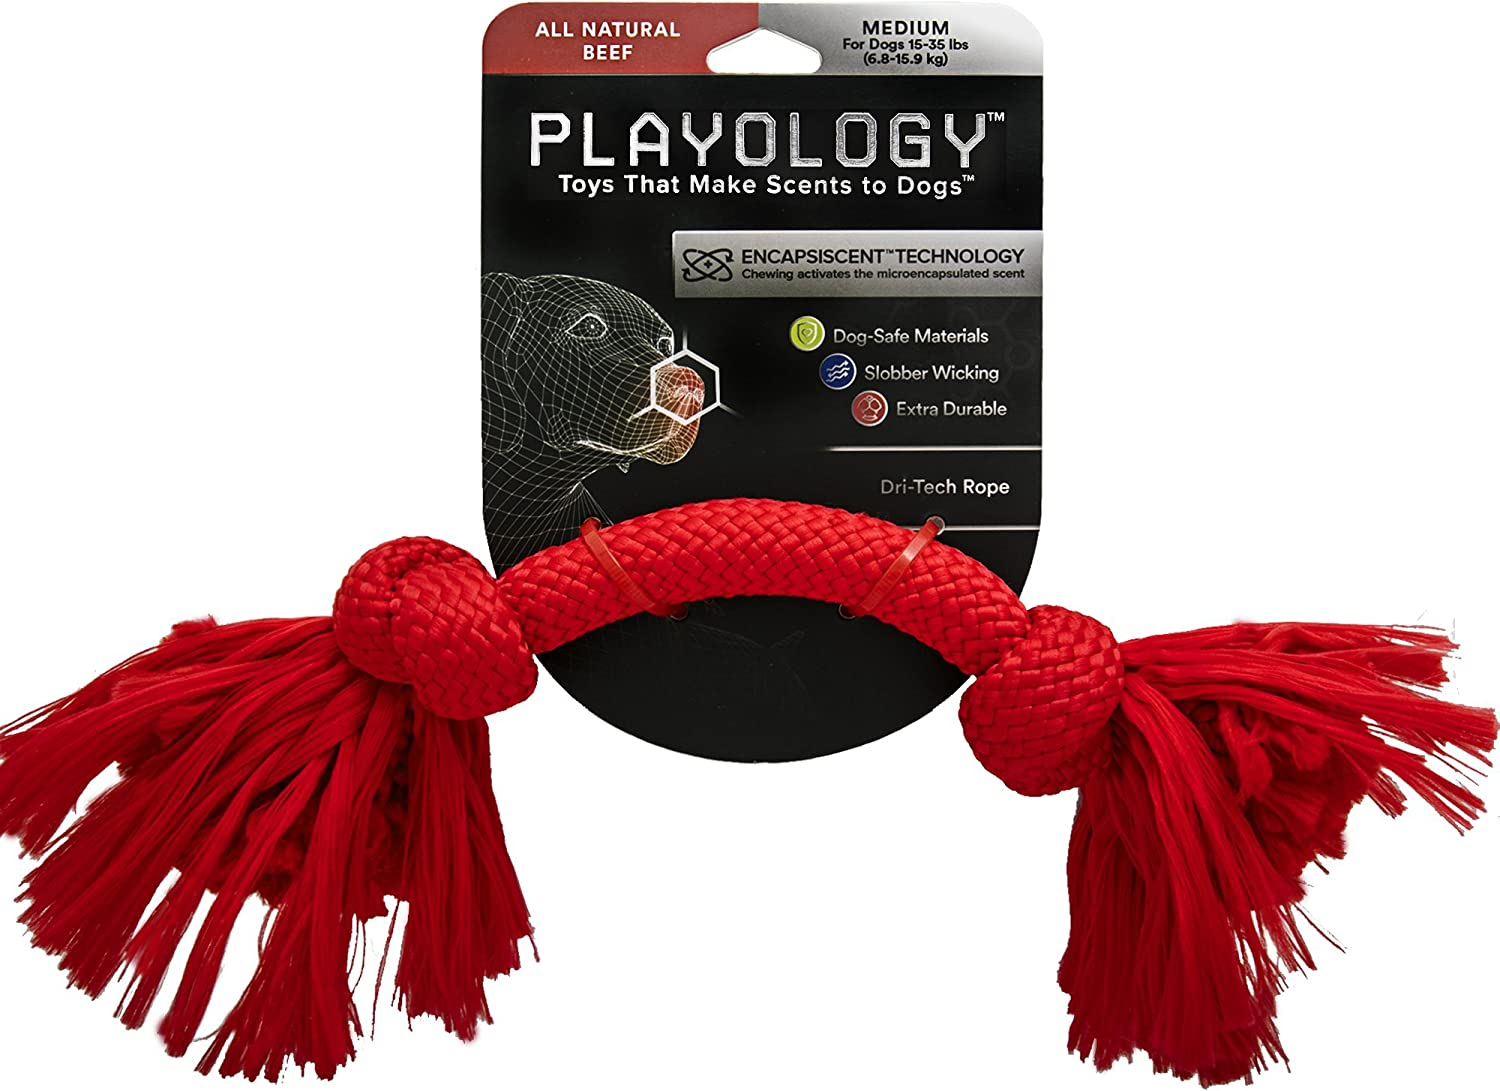 Playology DriTech Rope, a HealthEnhancing Beef Scented Chewable Dog Toy That Inspires Exercising Play, 12  Long Medium, in Red for Canines 1535 lb.